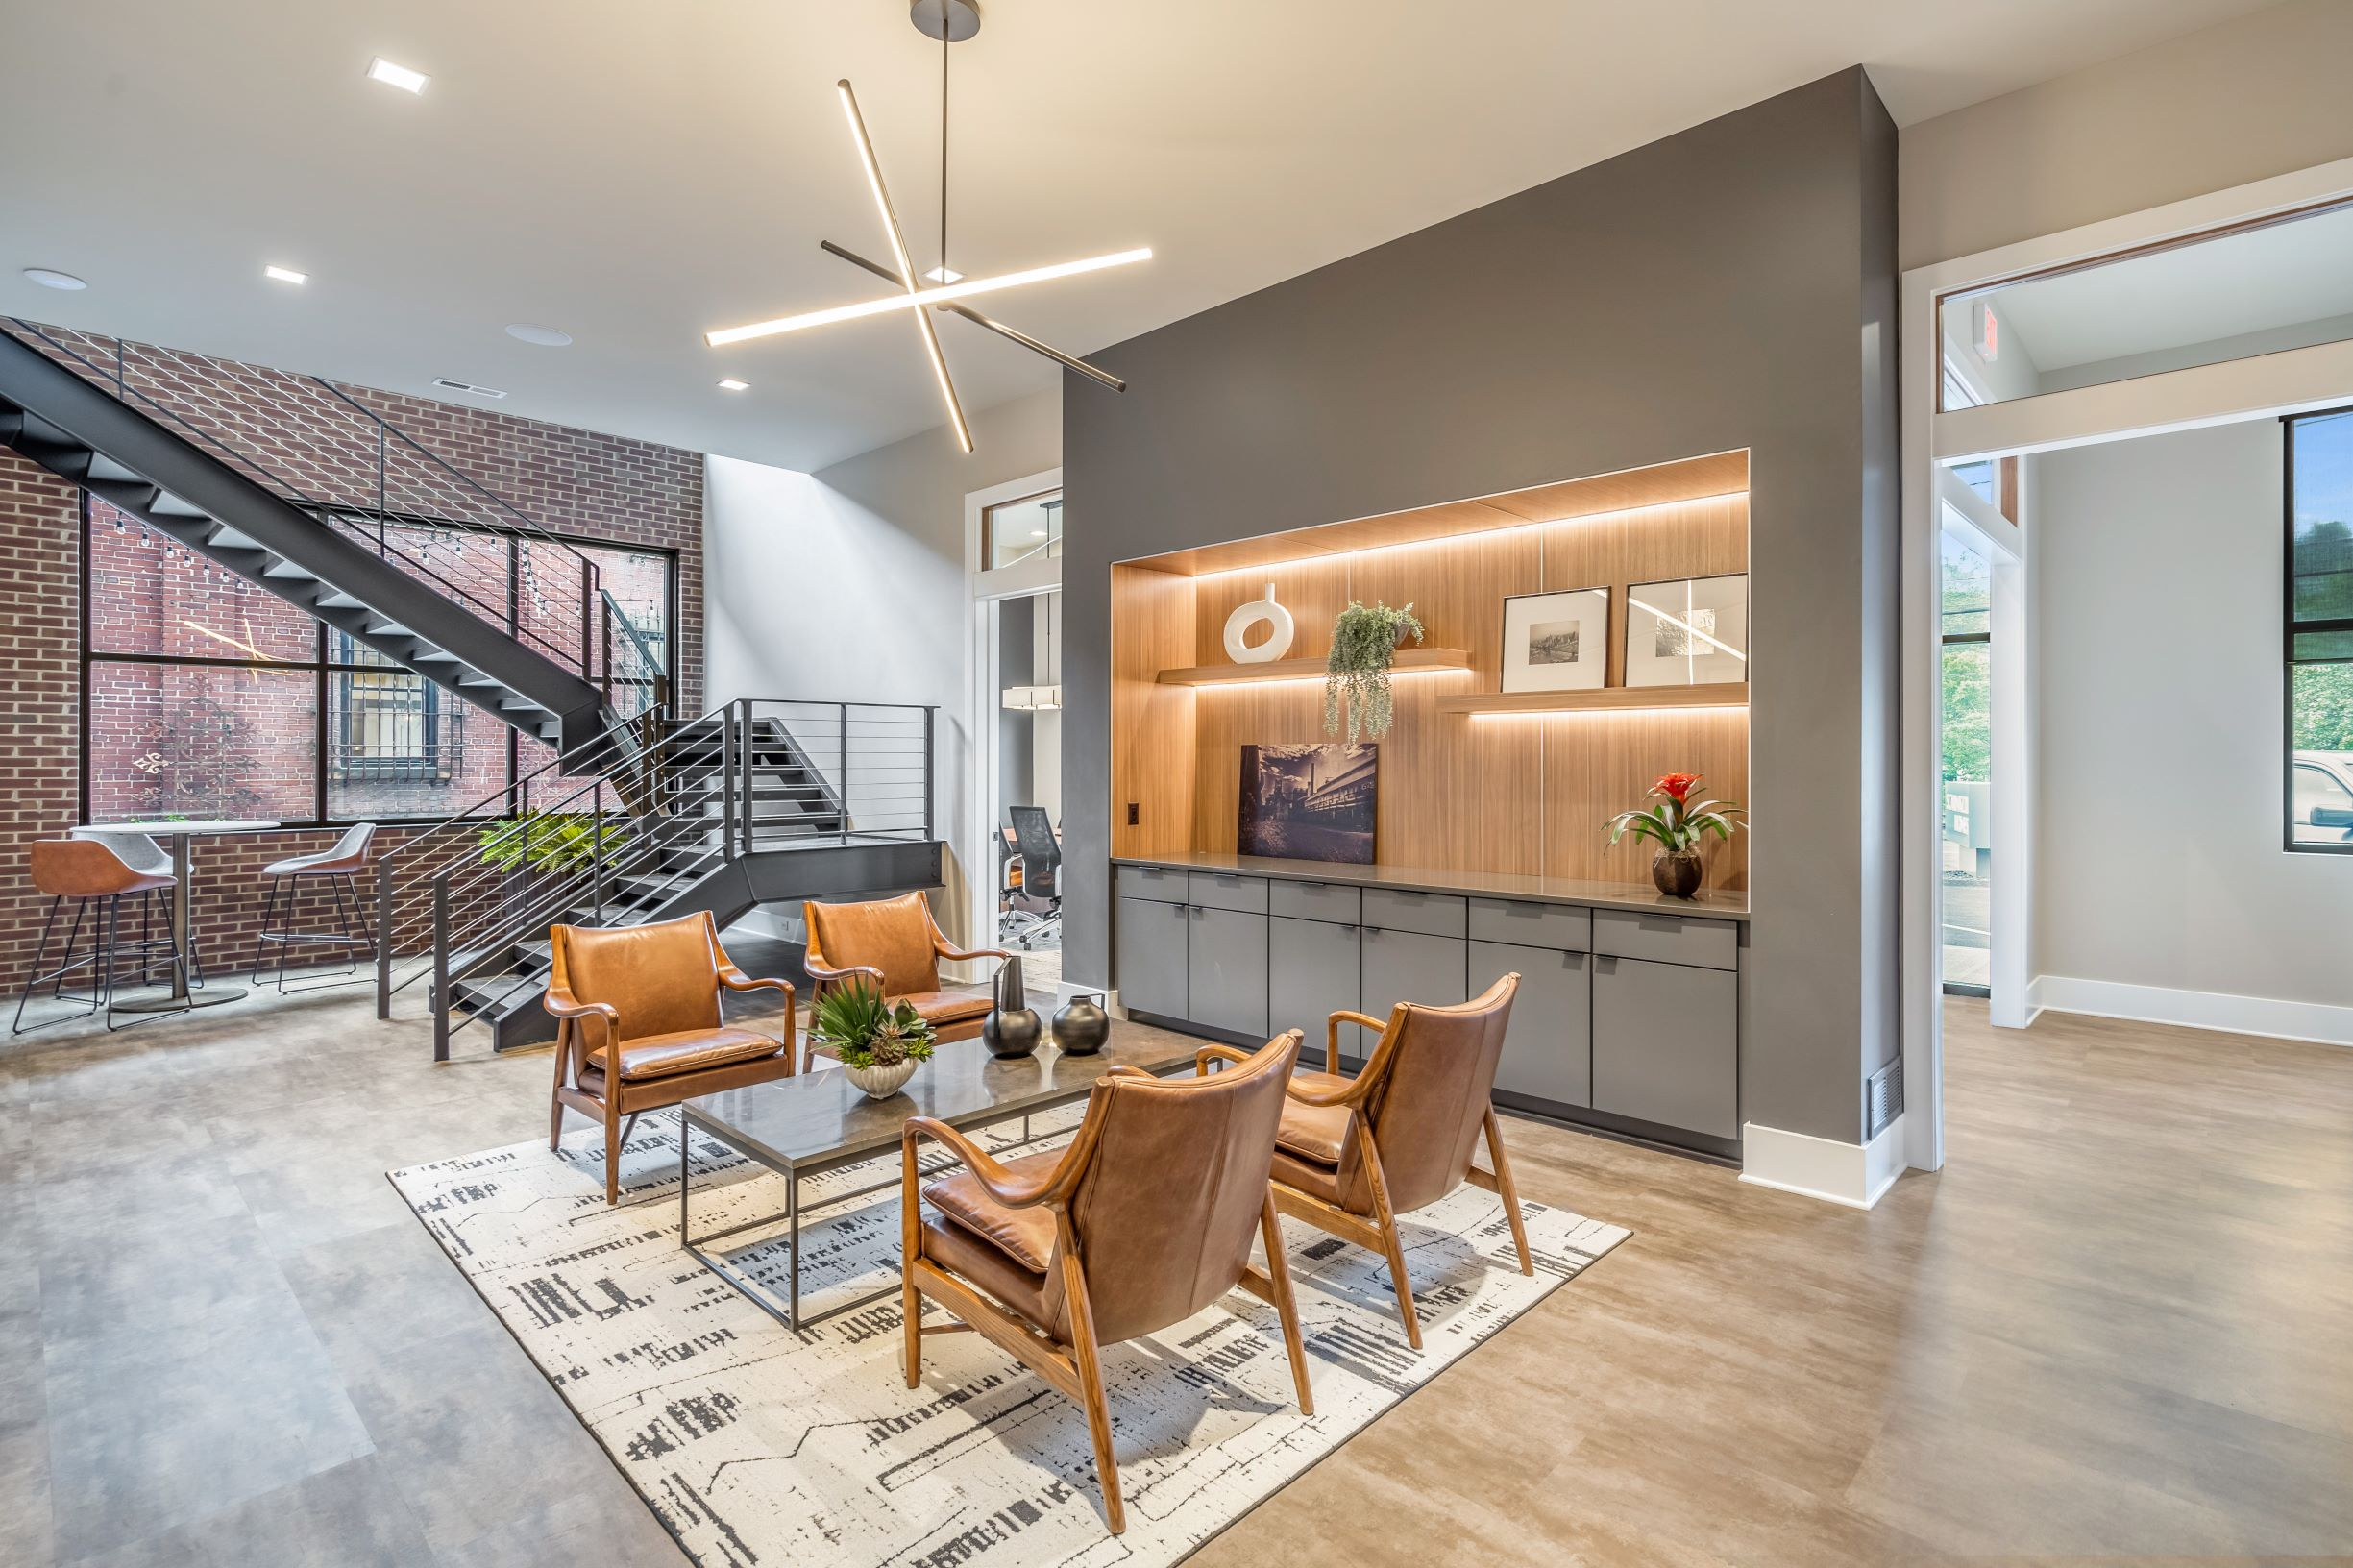 Open floor plan of design center and office space.